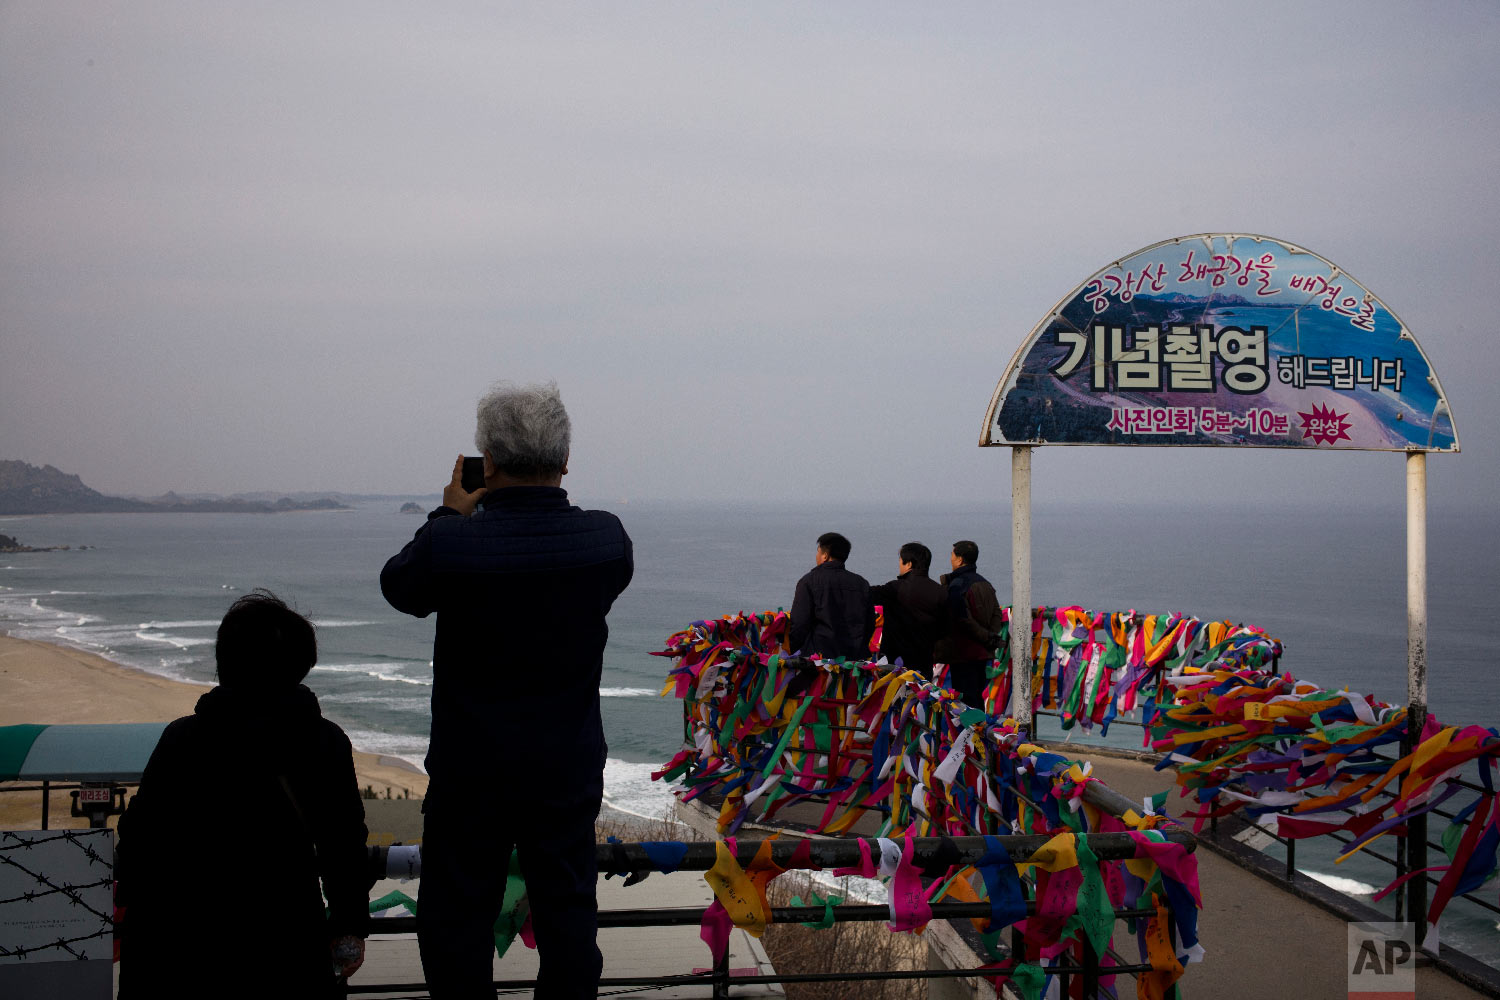 People view North Korea from the Goseong Unification Observatory in Goseong, South Korea, Monday, Feb. 19, 2018. (AP Photo/Jae C. Hong)